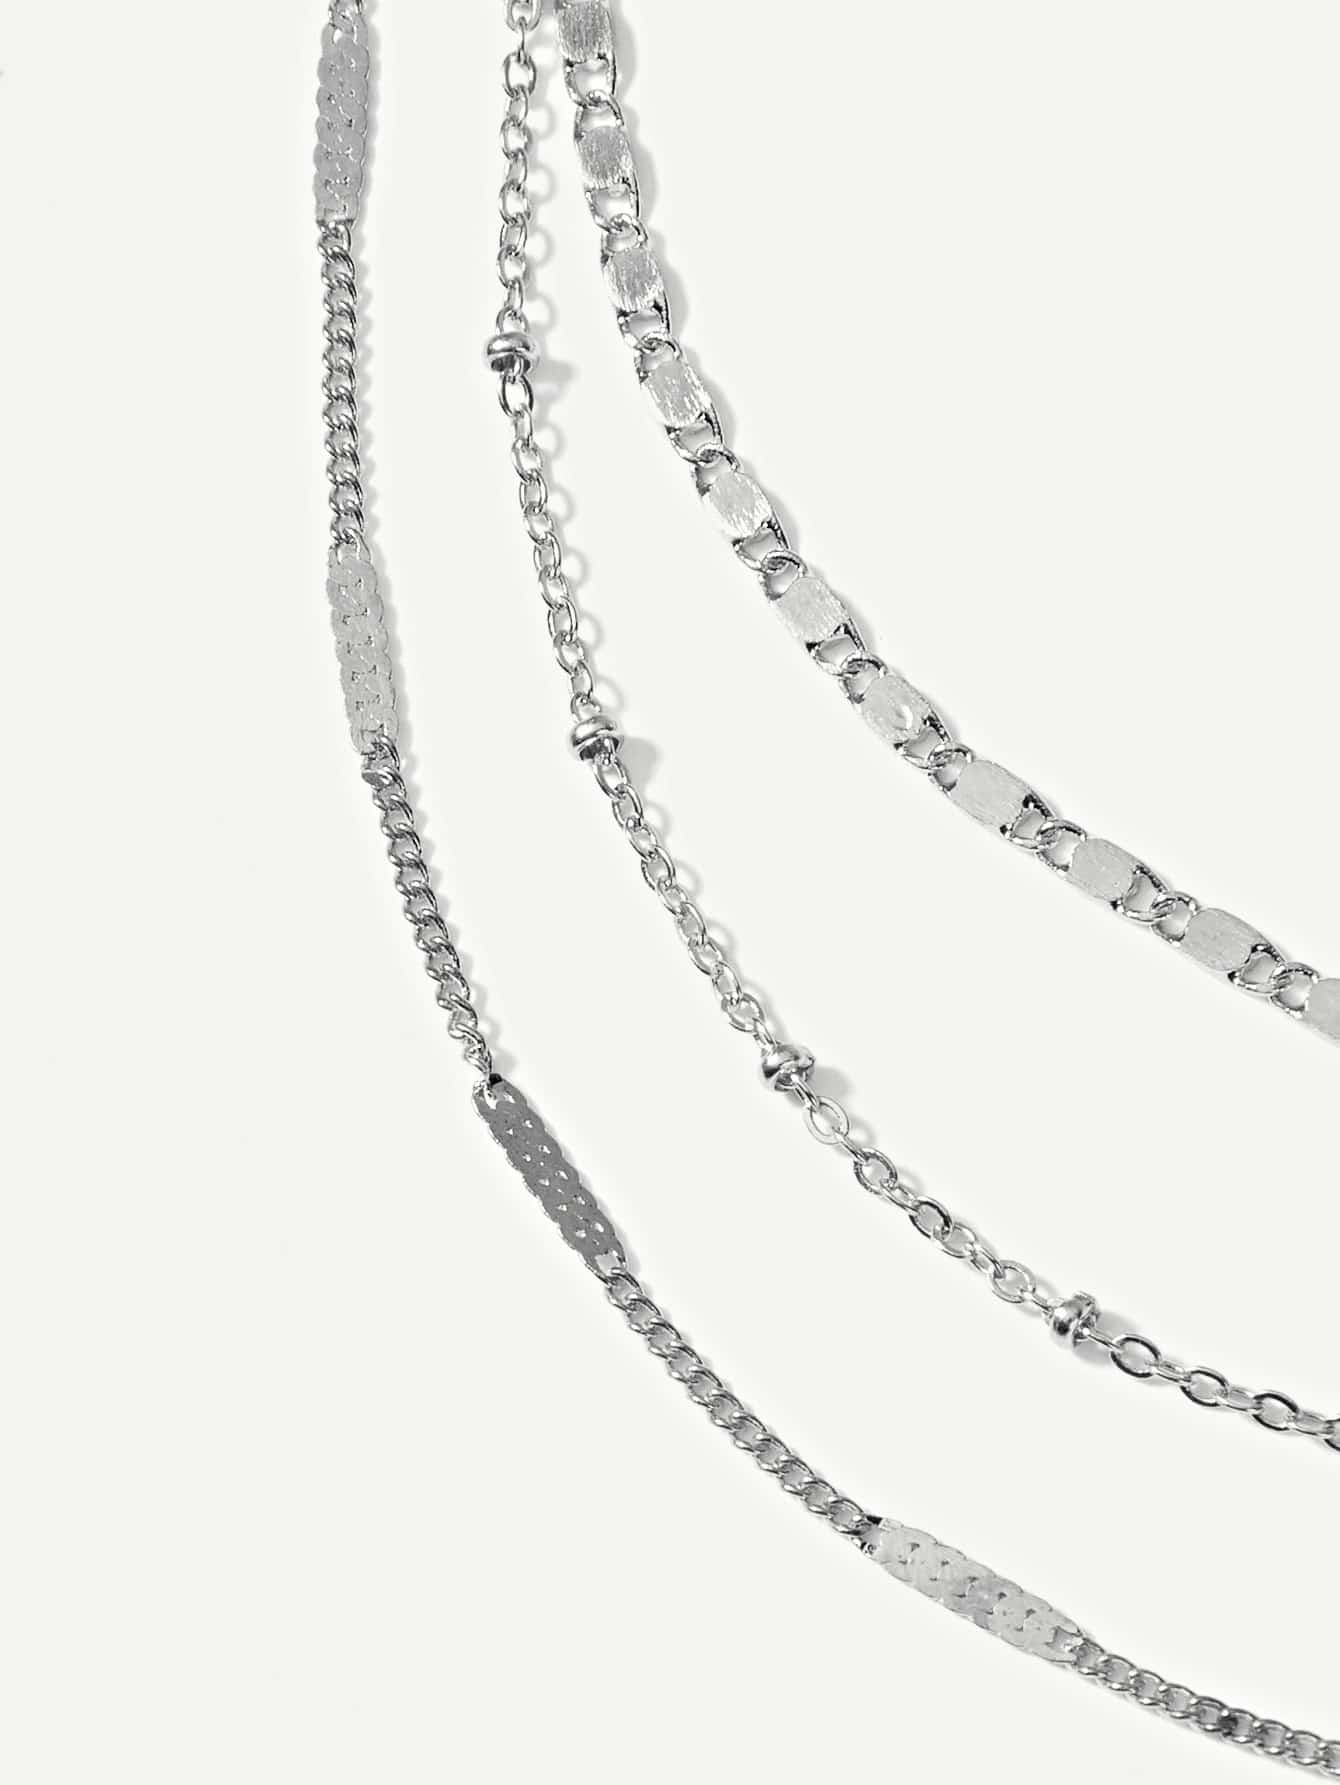 Metal Sheet Decor Layered Chain Necklace